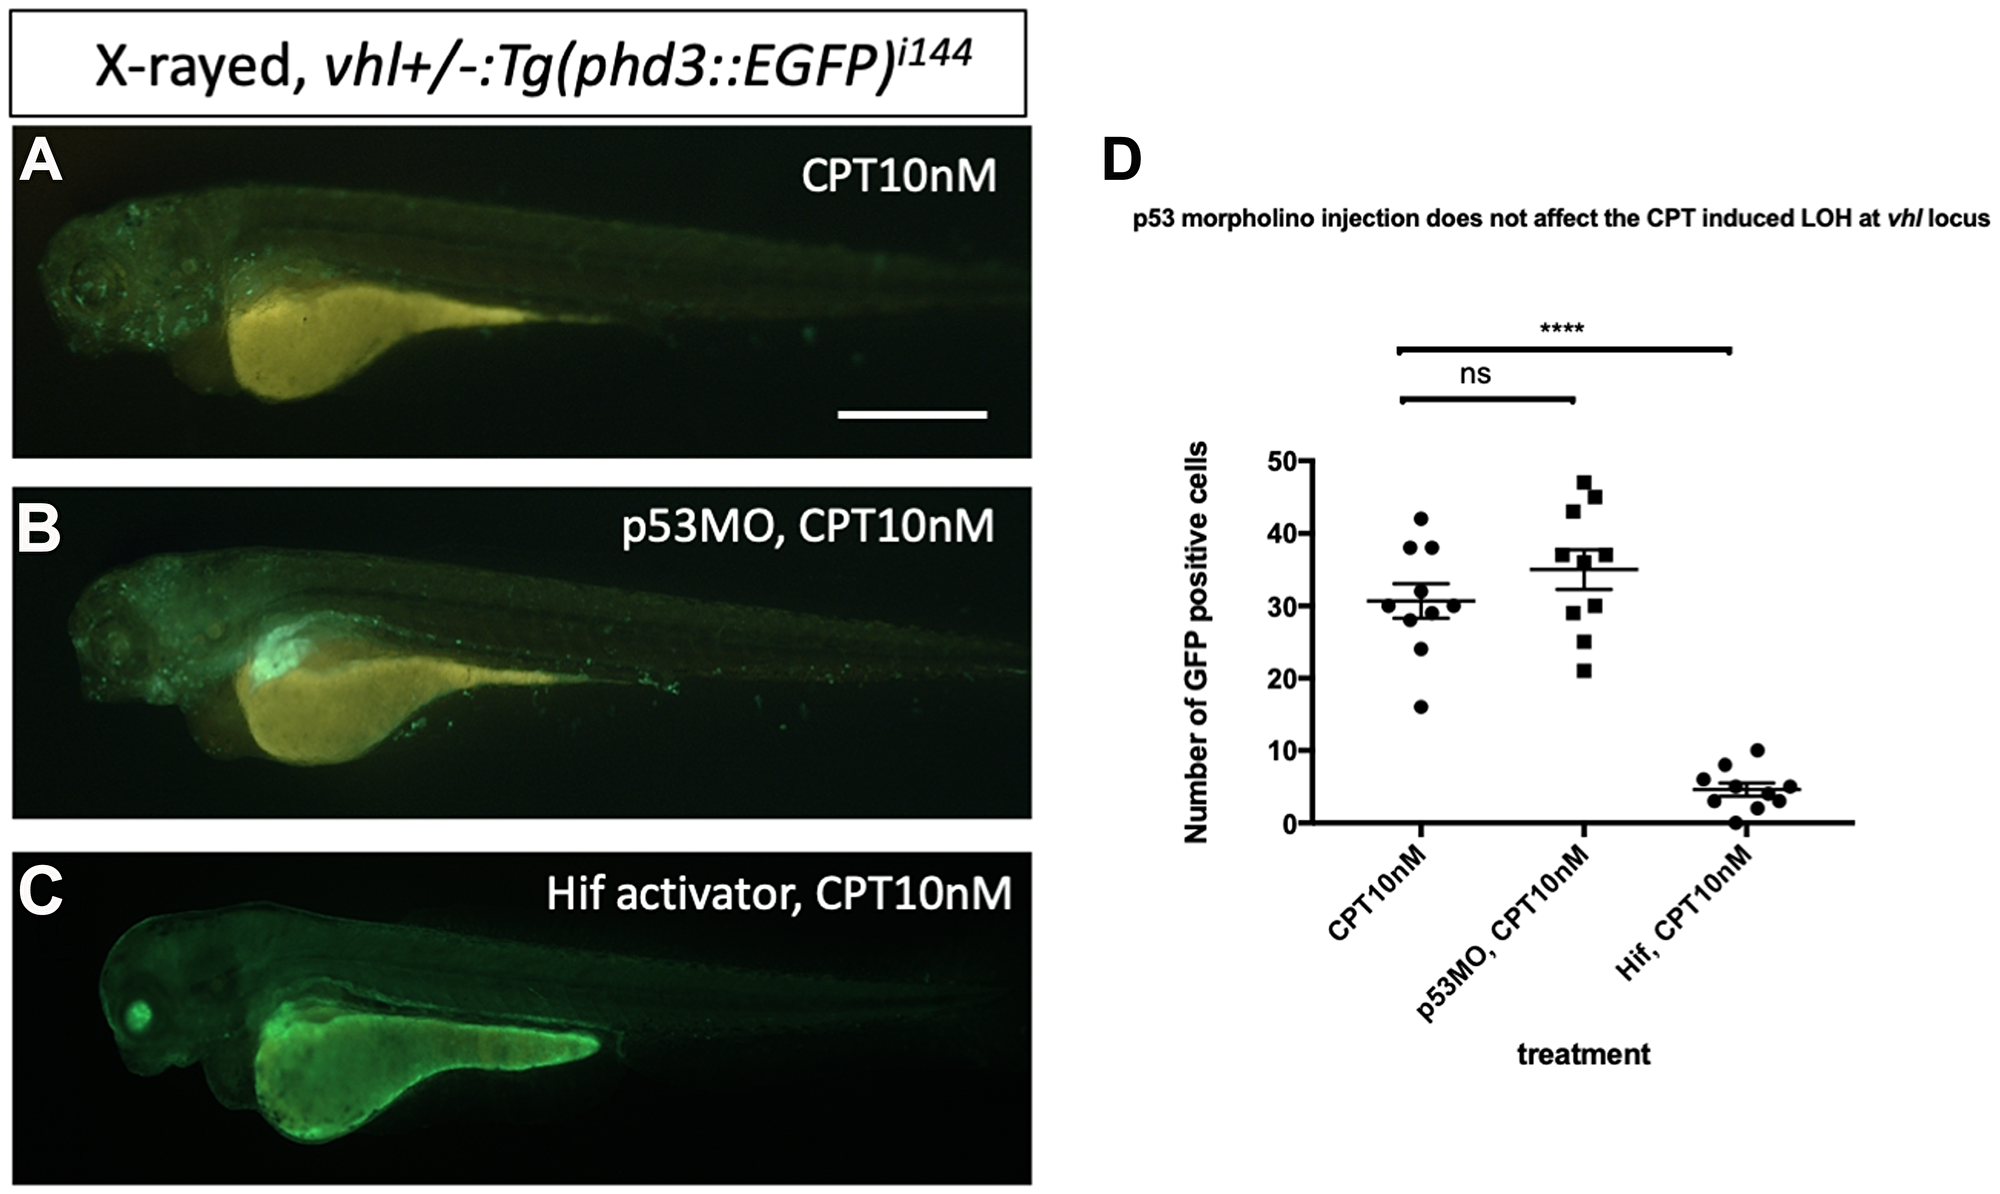 p53 knock down by p53 morpholino does not affect the number of LOH at the vhl locus induced by CPT.